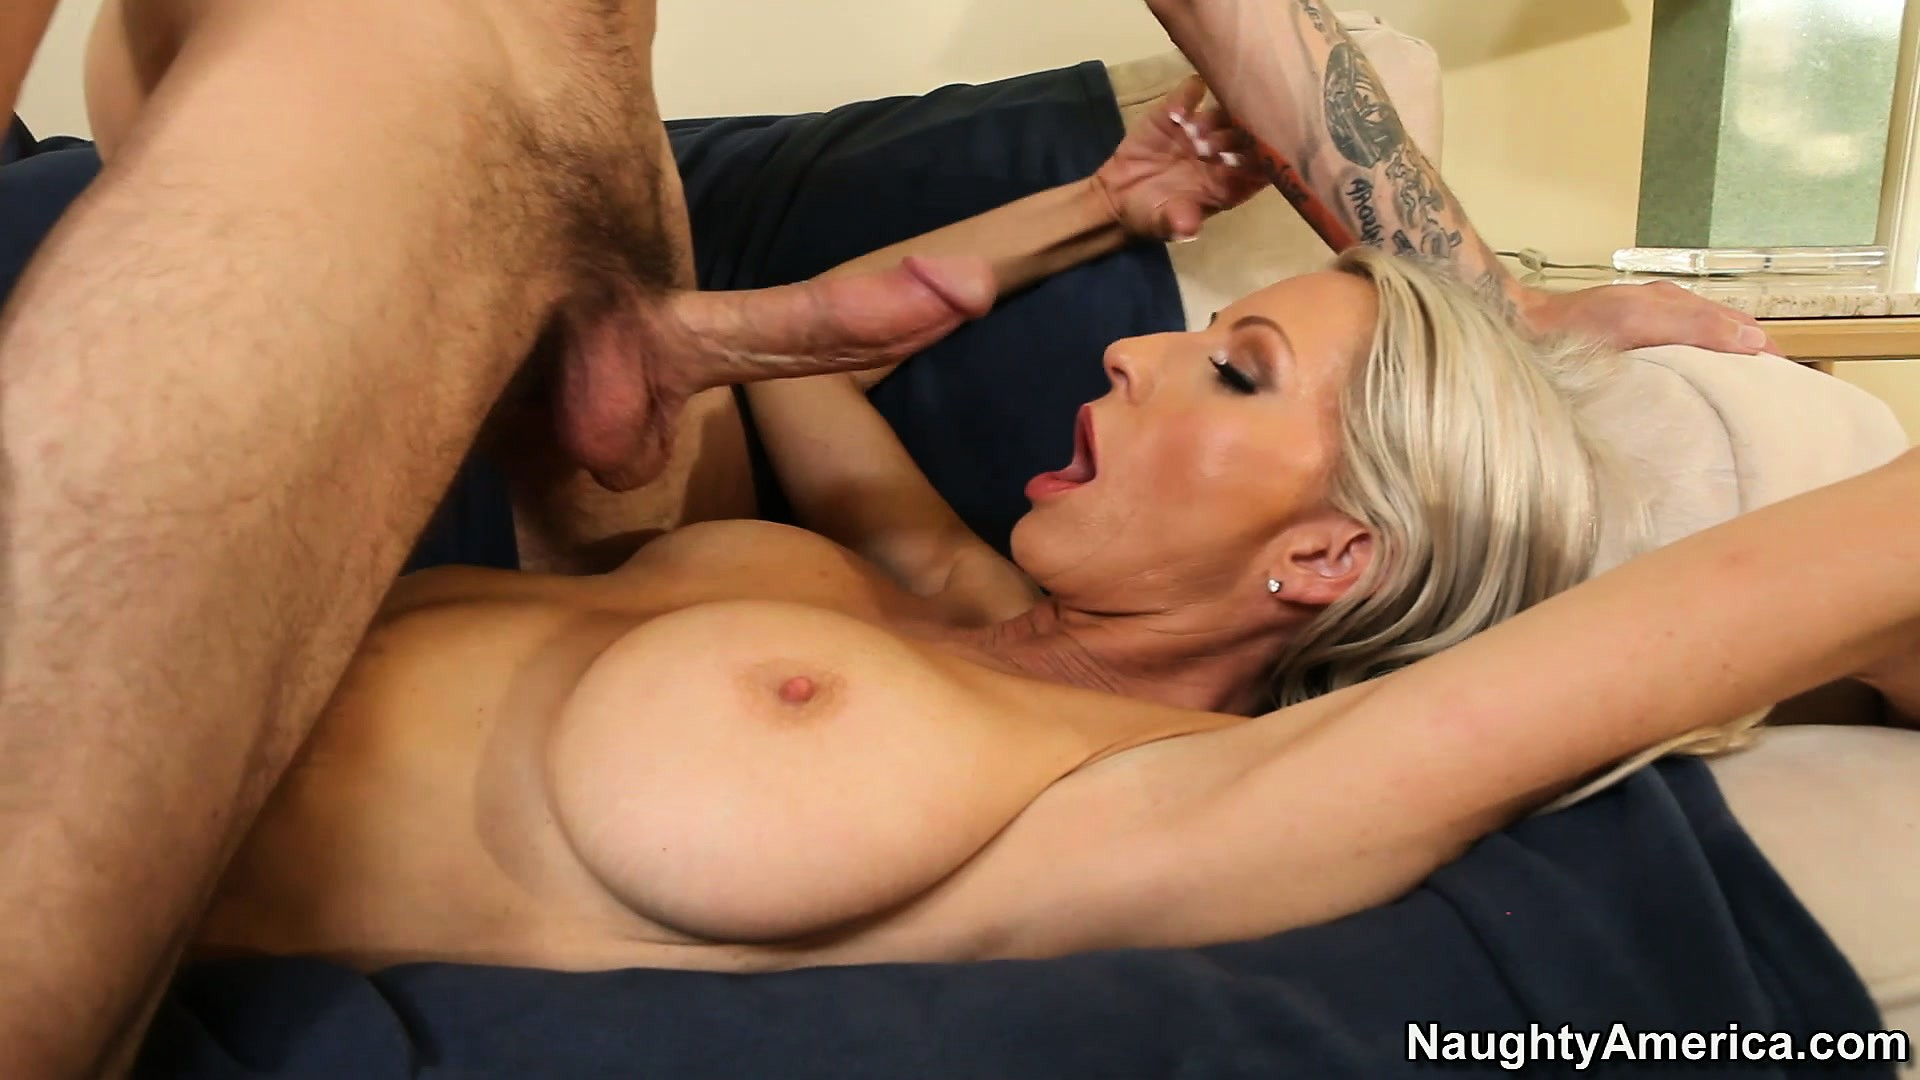 Porn Tube of Harmonic Female With Stunning Boobs Emma Starr Enjoys The Company Of Well-endowed Lecher